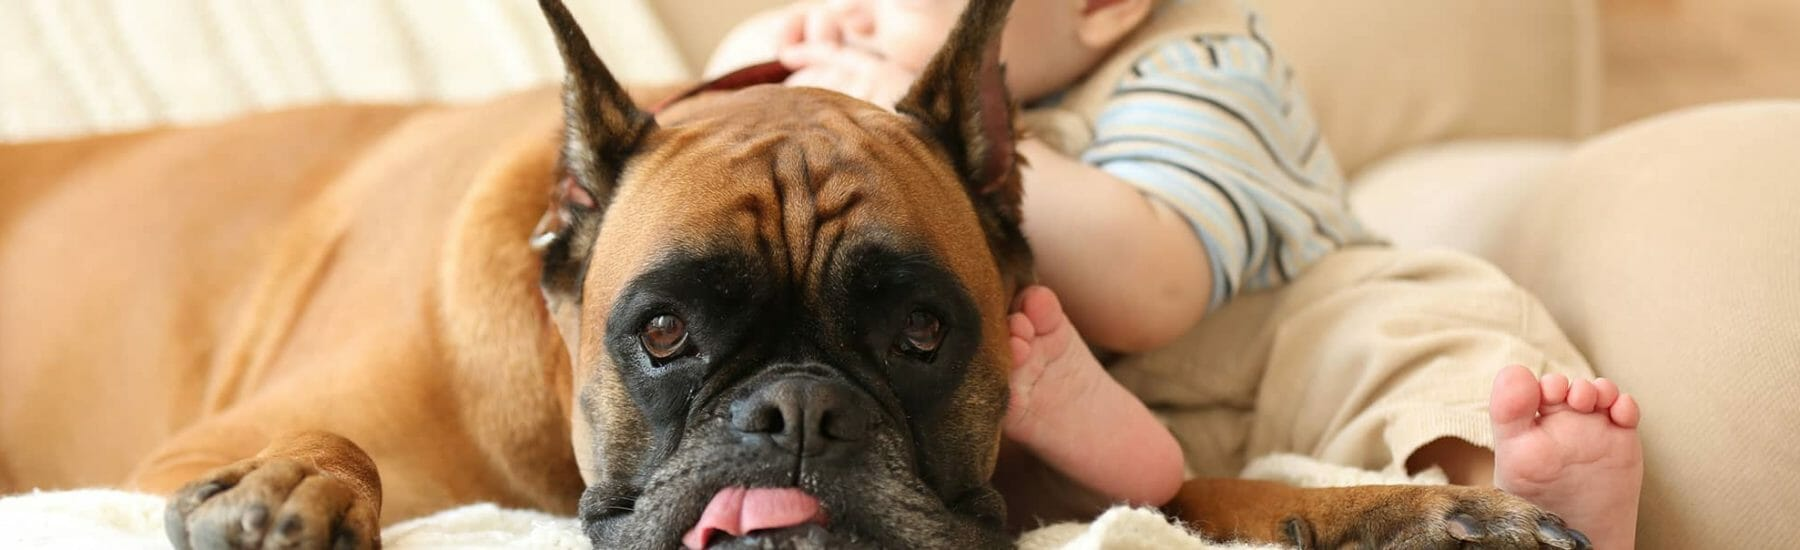 Pug laying on couch with child